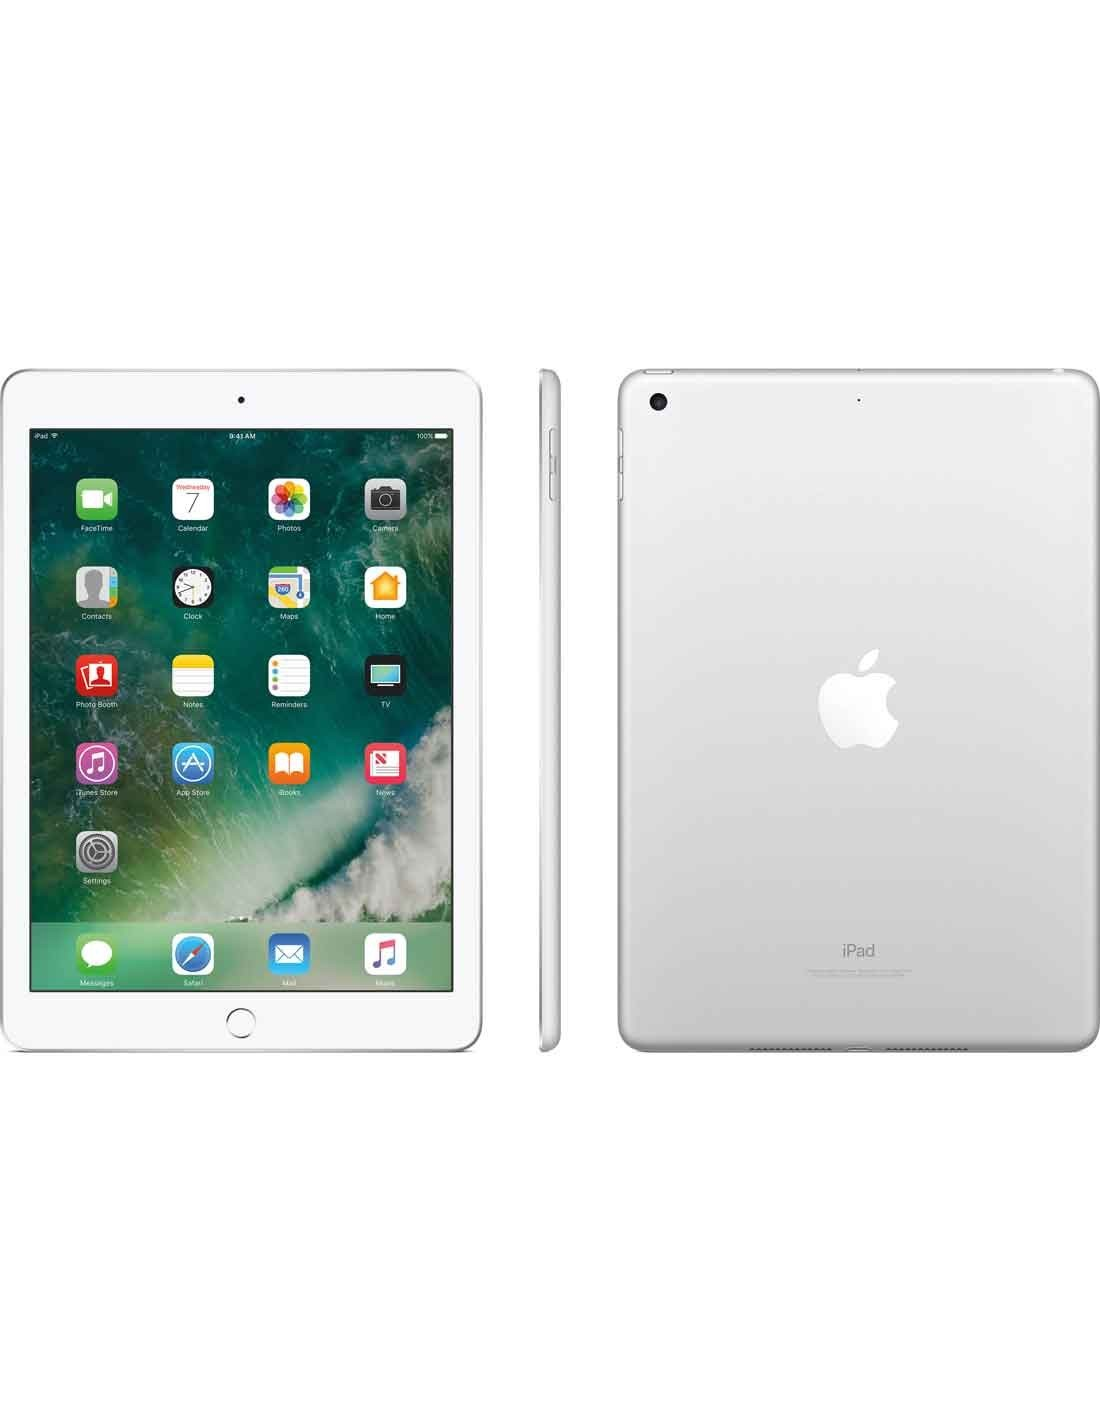 Apple iPad Air 2 Wi-Fi and Cellular 128GB Space Gray MGWL2B/A Images and Pictures